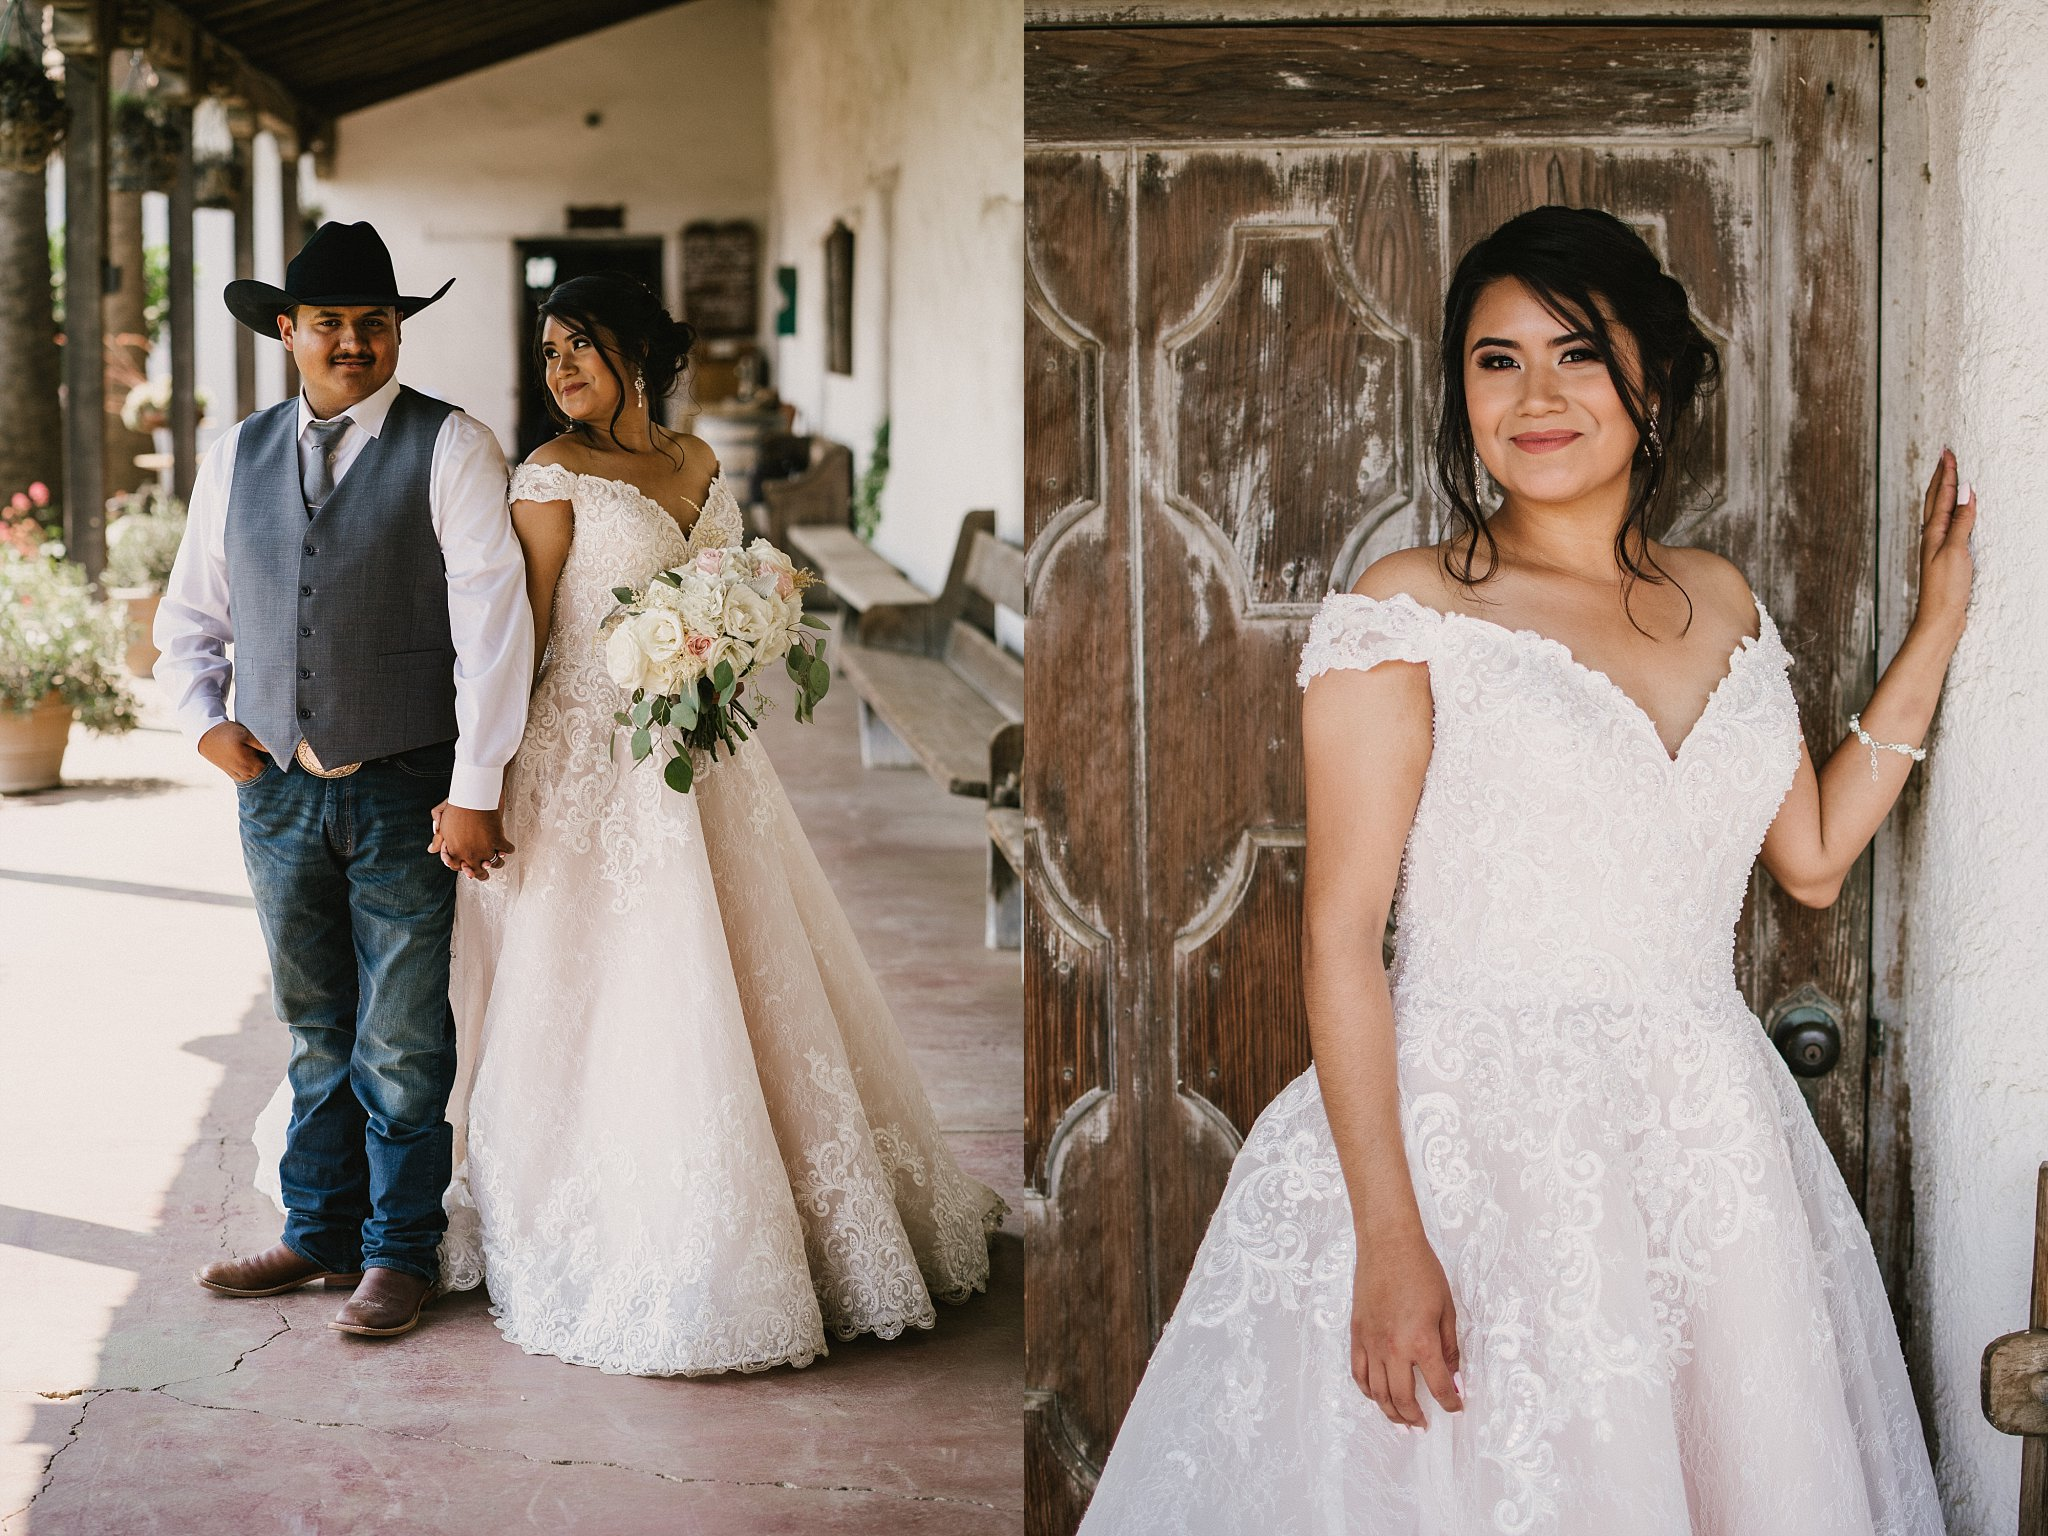 soledad-mission-wedding-photographer-drew-zavala-200.jpg